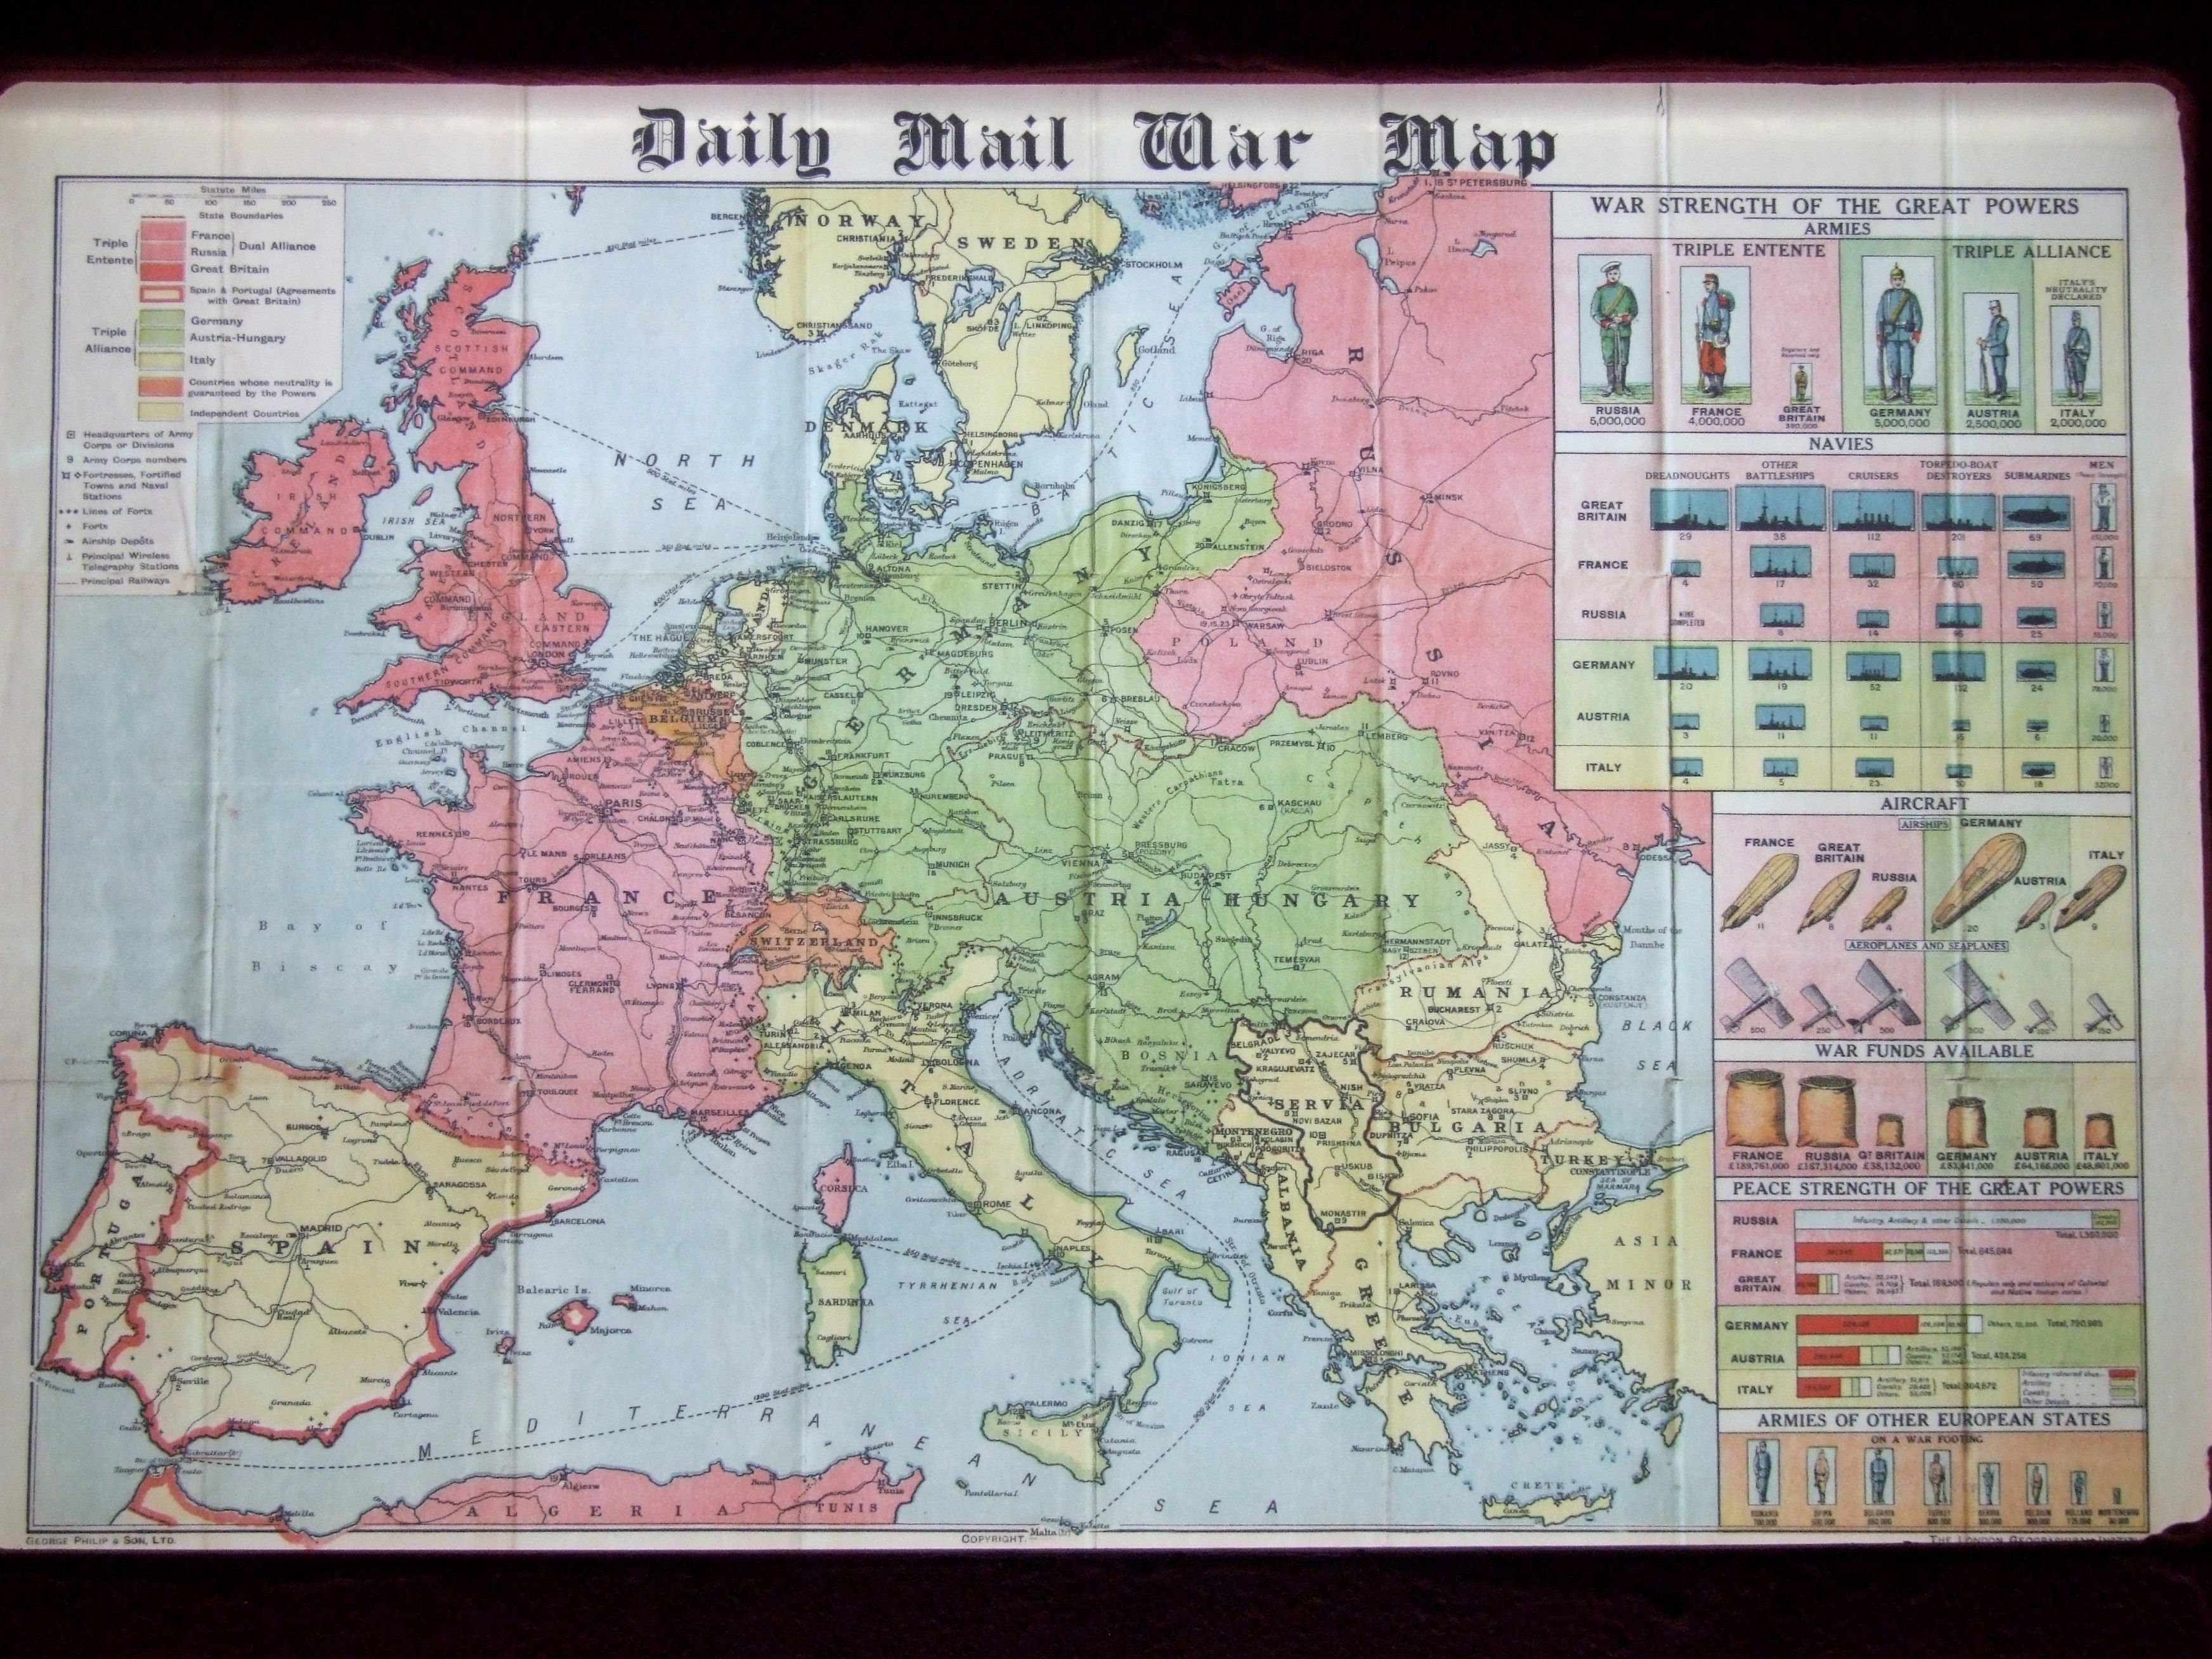 Daily Mail War Map, In Flanders' Fields Museum, Ypes